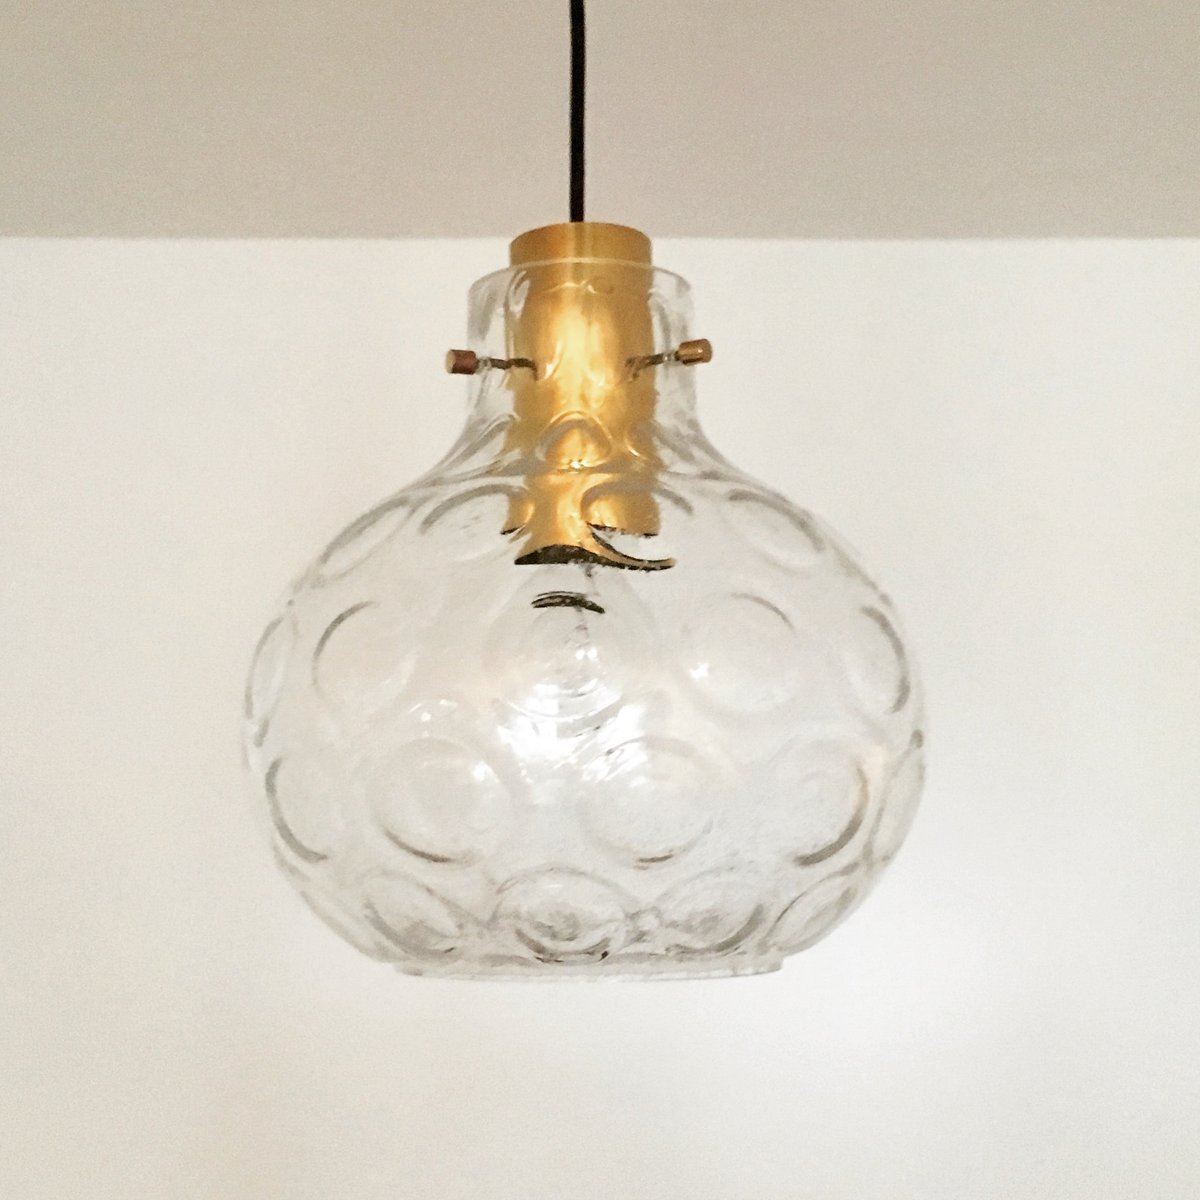 Bubble glass pendant lamp from limburg 1960s for sale at pamono bubble glass pendant lamp from limburg 1960s audiocablefo